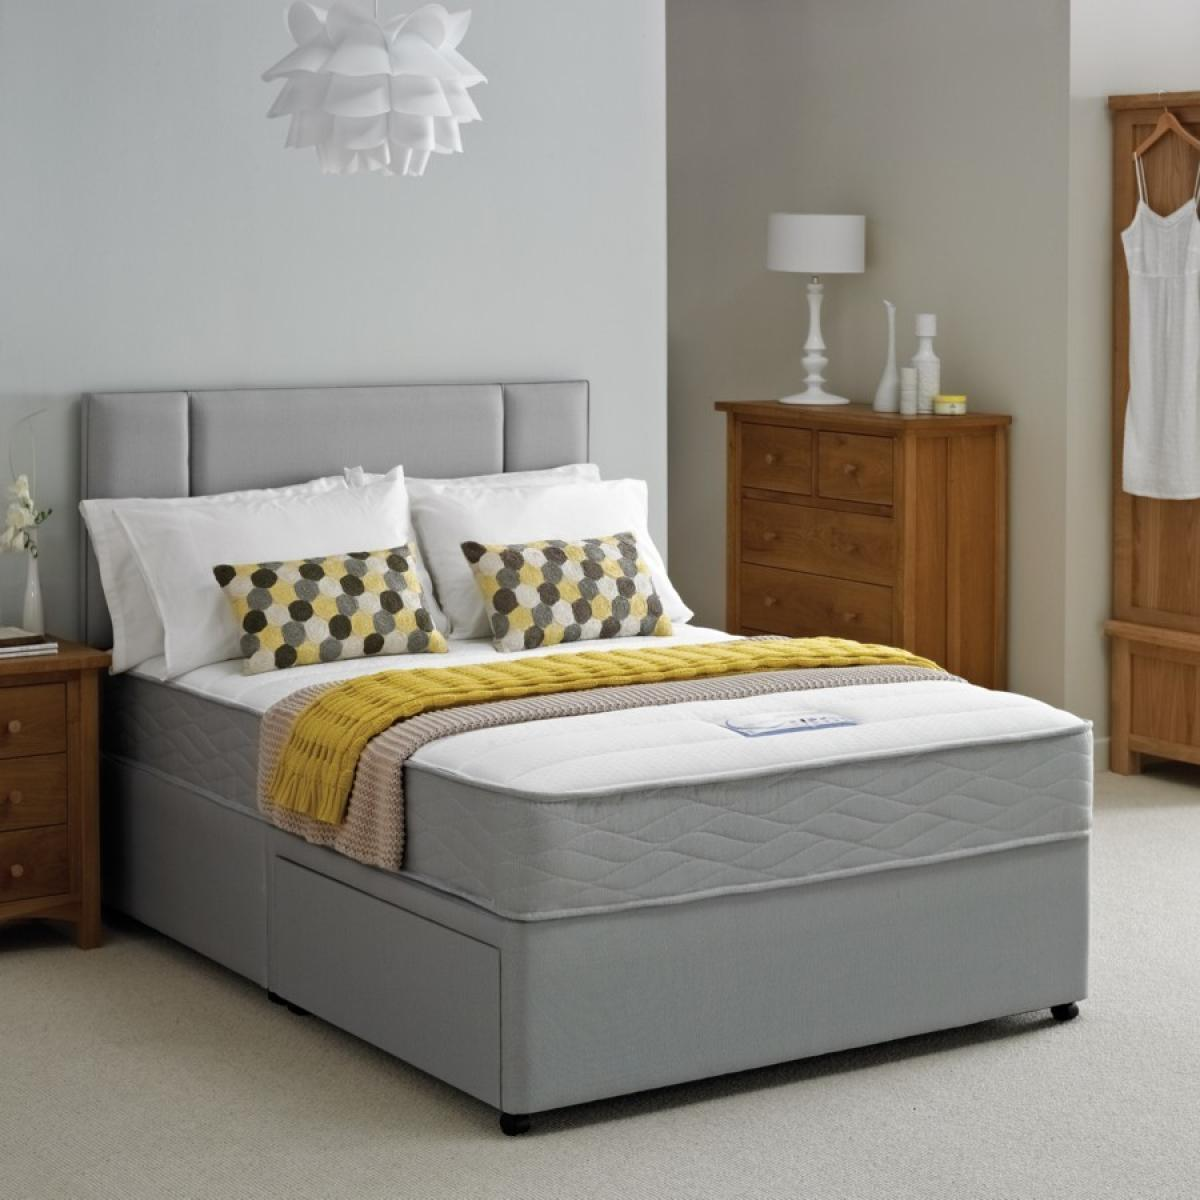 Beds For Small Bedrooms How To Choose Small Double Bed For Small Bedroom